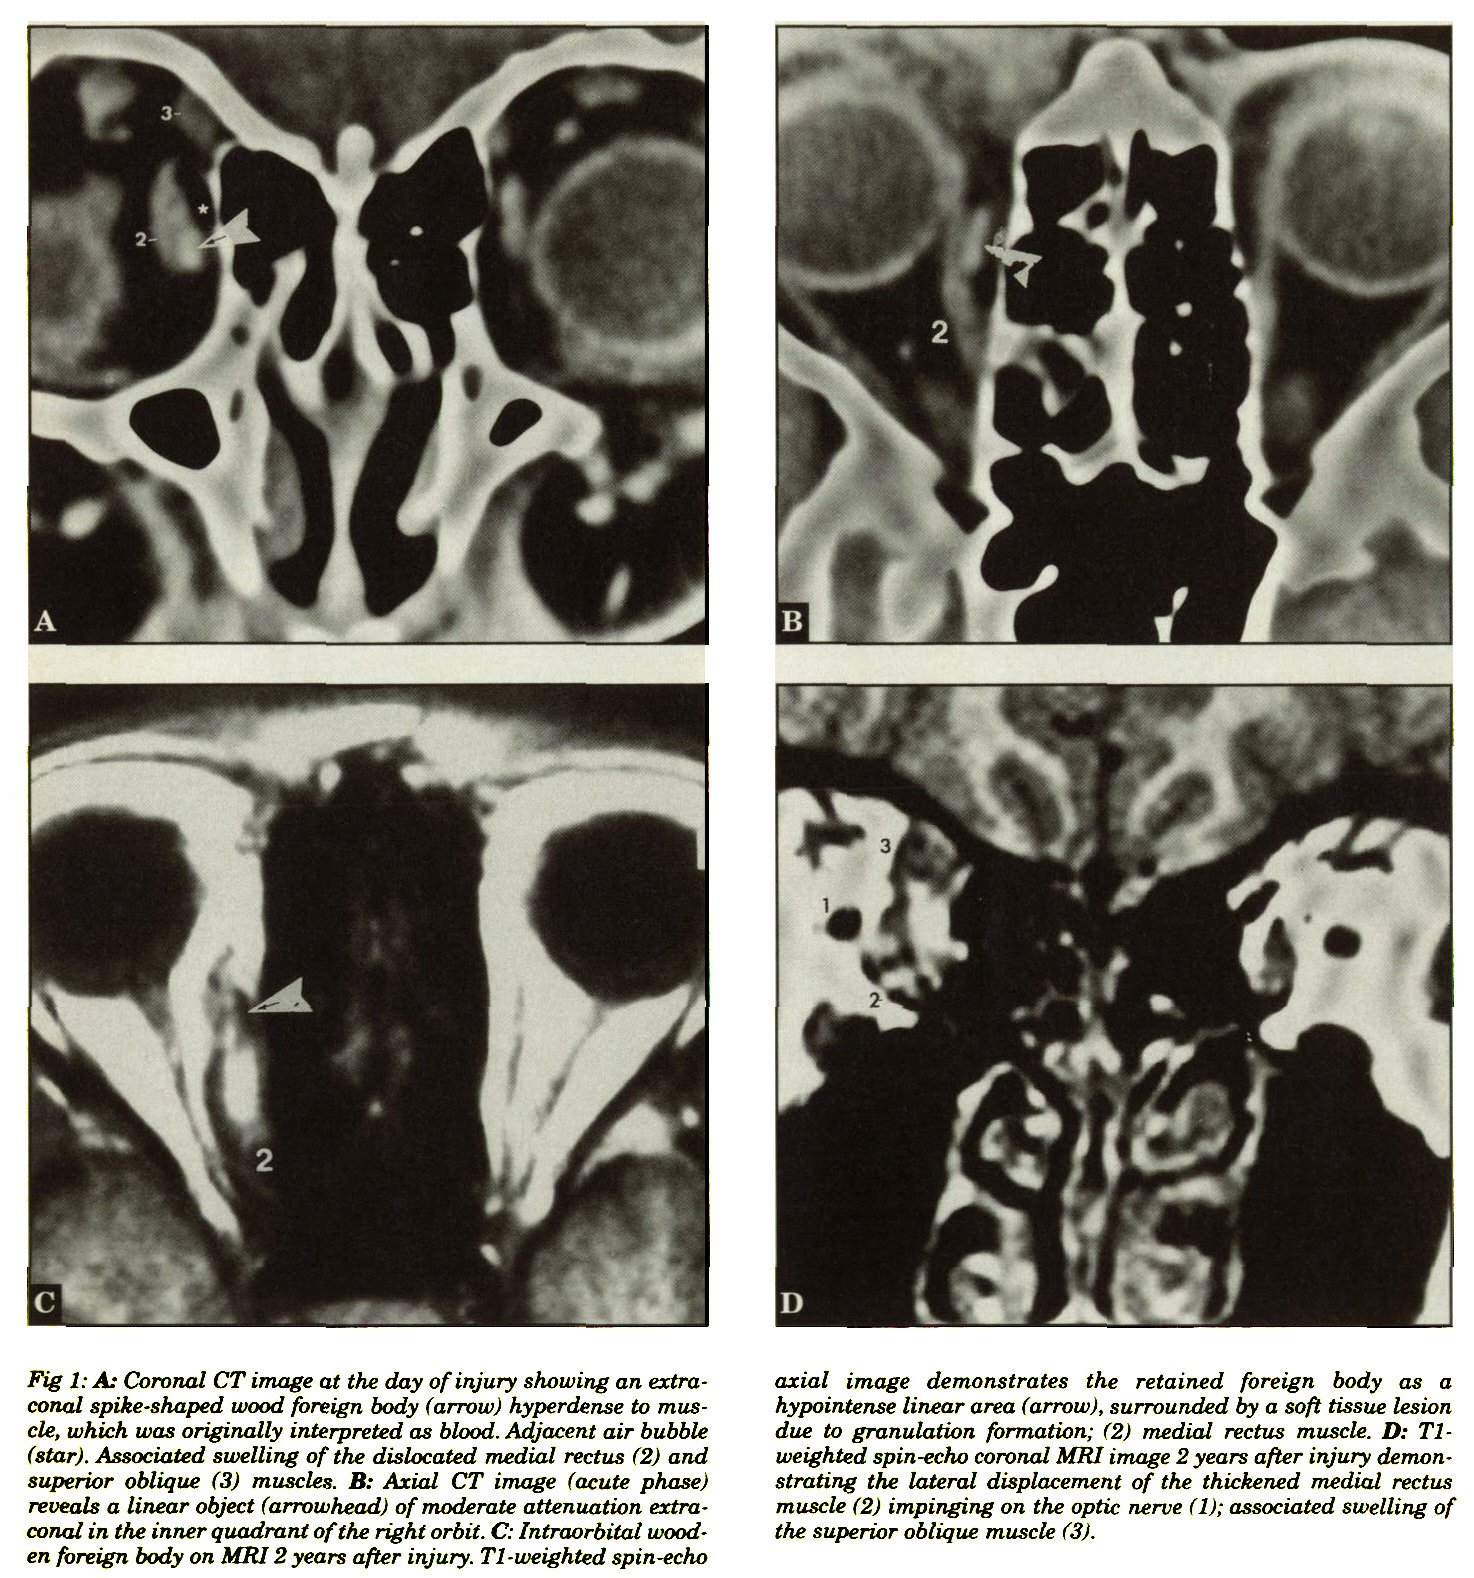 Optic Atrophy Induced by an Intraorbital Wooden Foreign Body